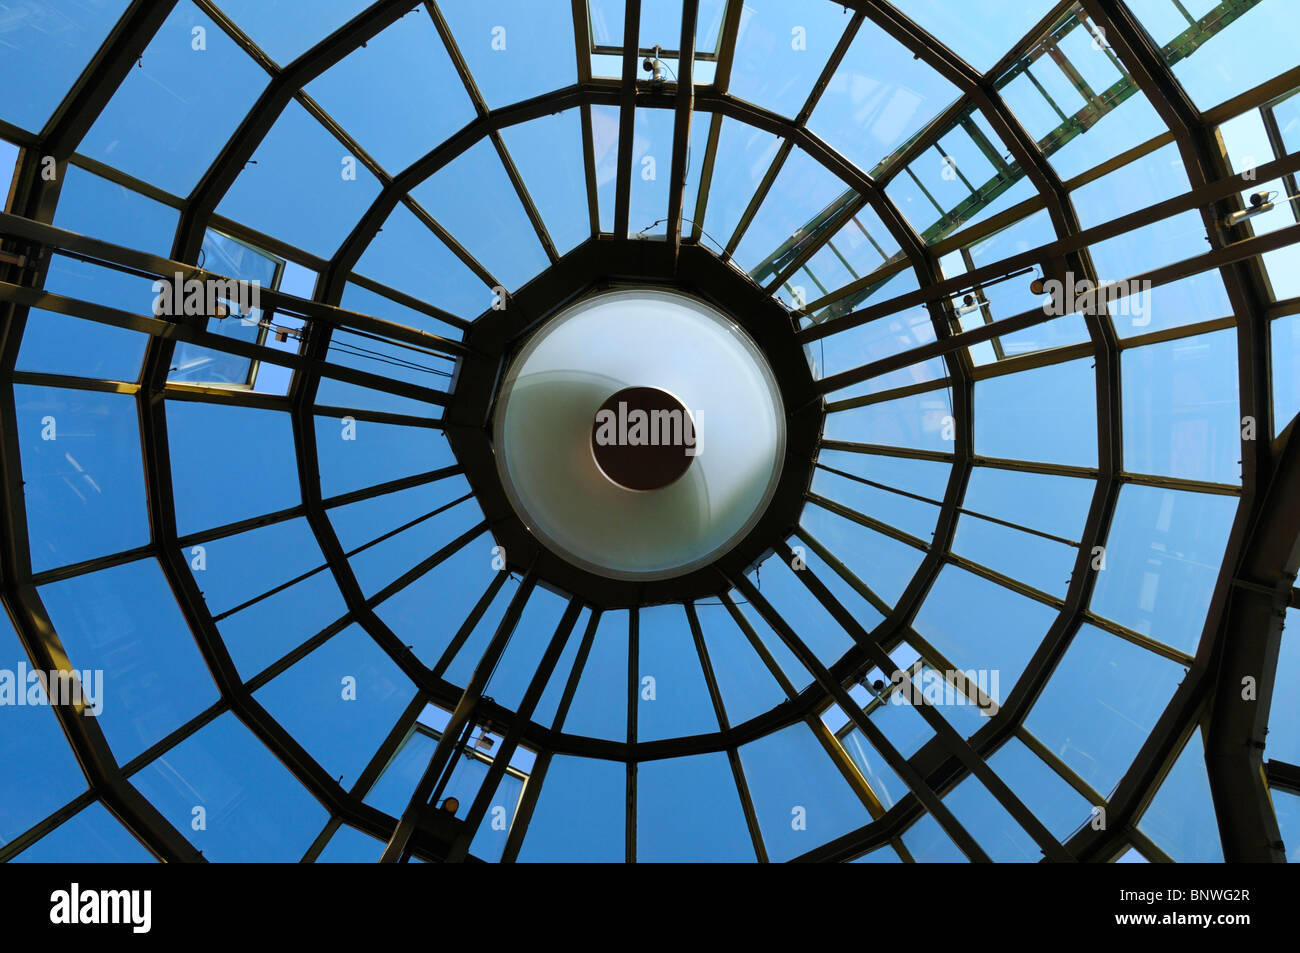 Straight up inside view at parts of the glass roof of a shopping center in Hamburg, Germany. - Stock Image